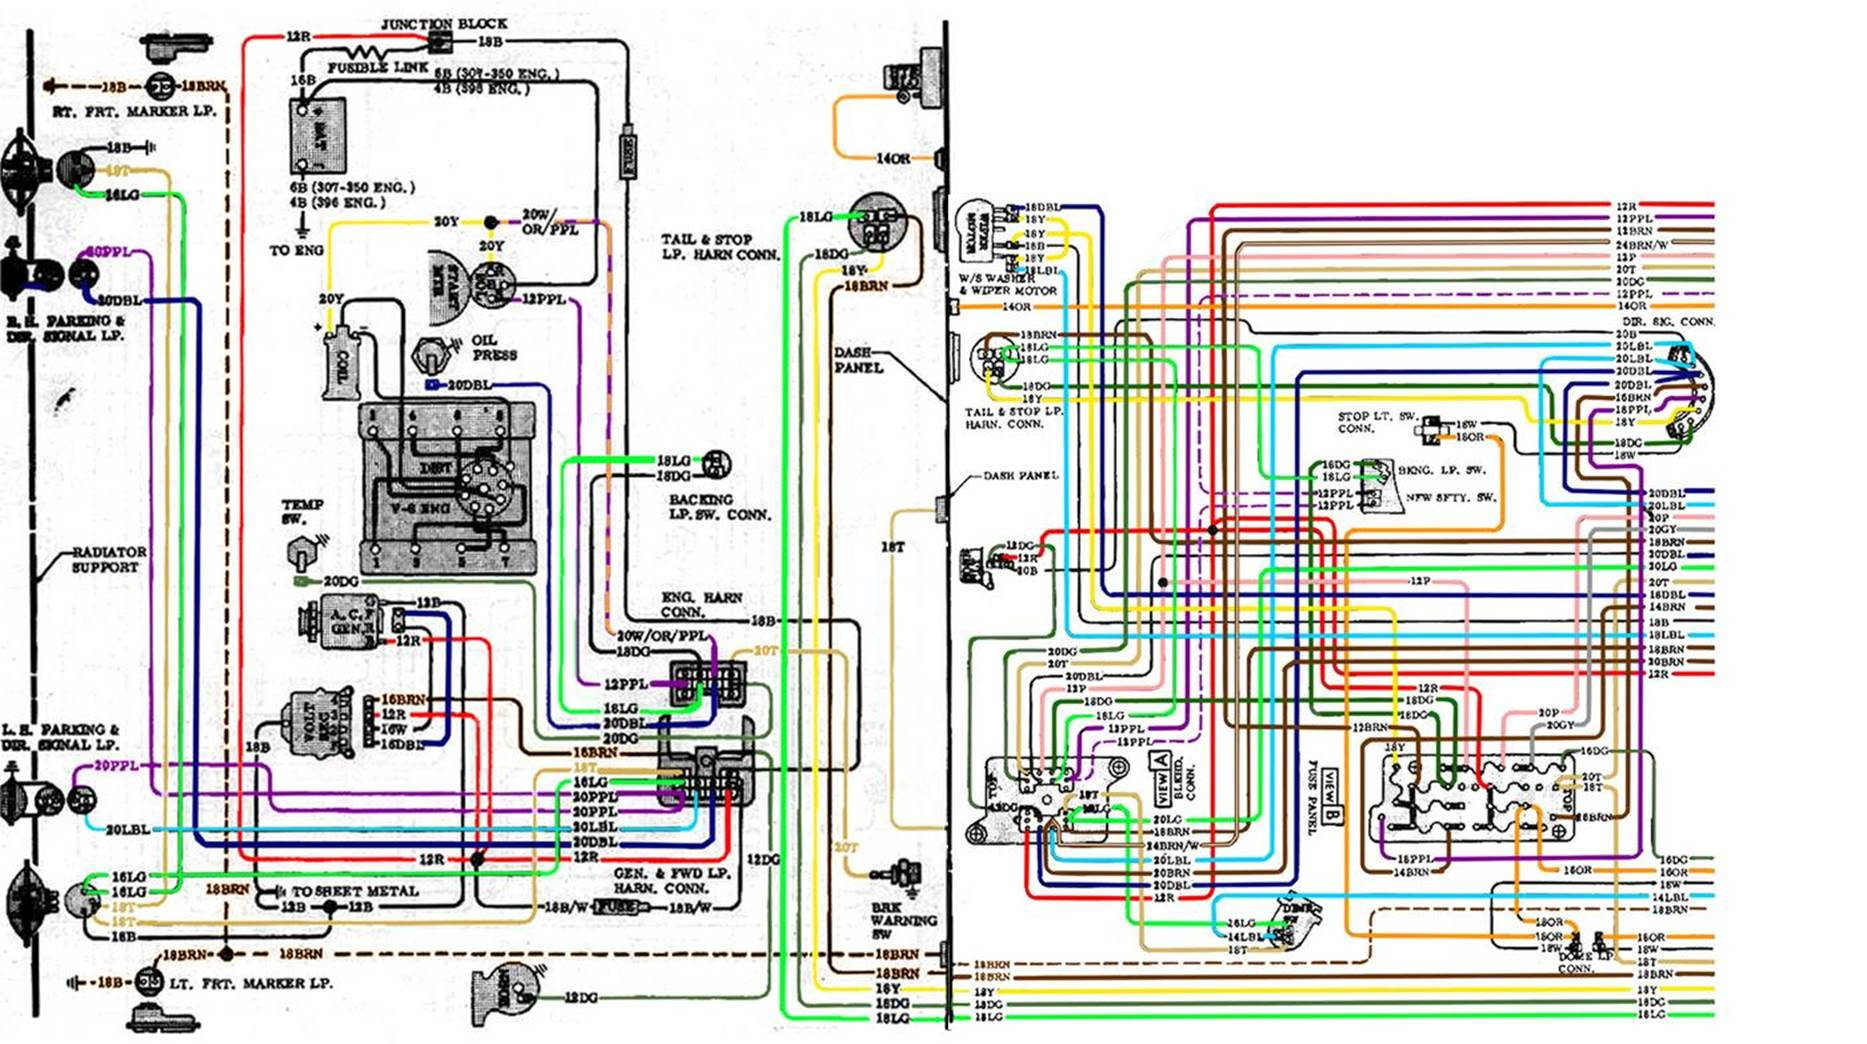 image002 67 72 chevy wiring diagram 1965 chevy wiring diagram at soozxer.org